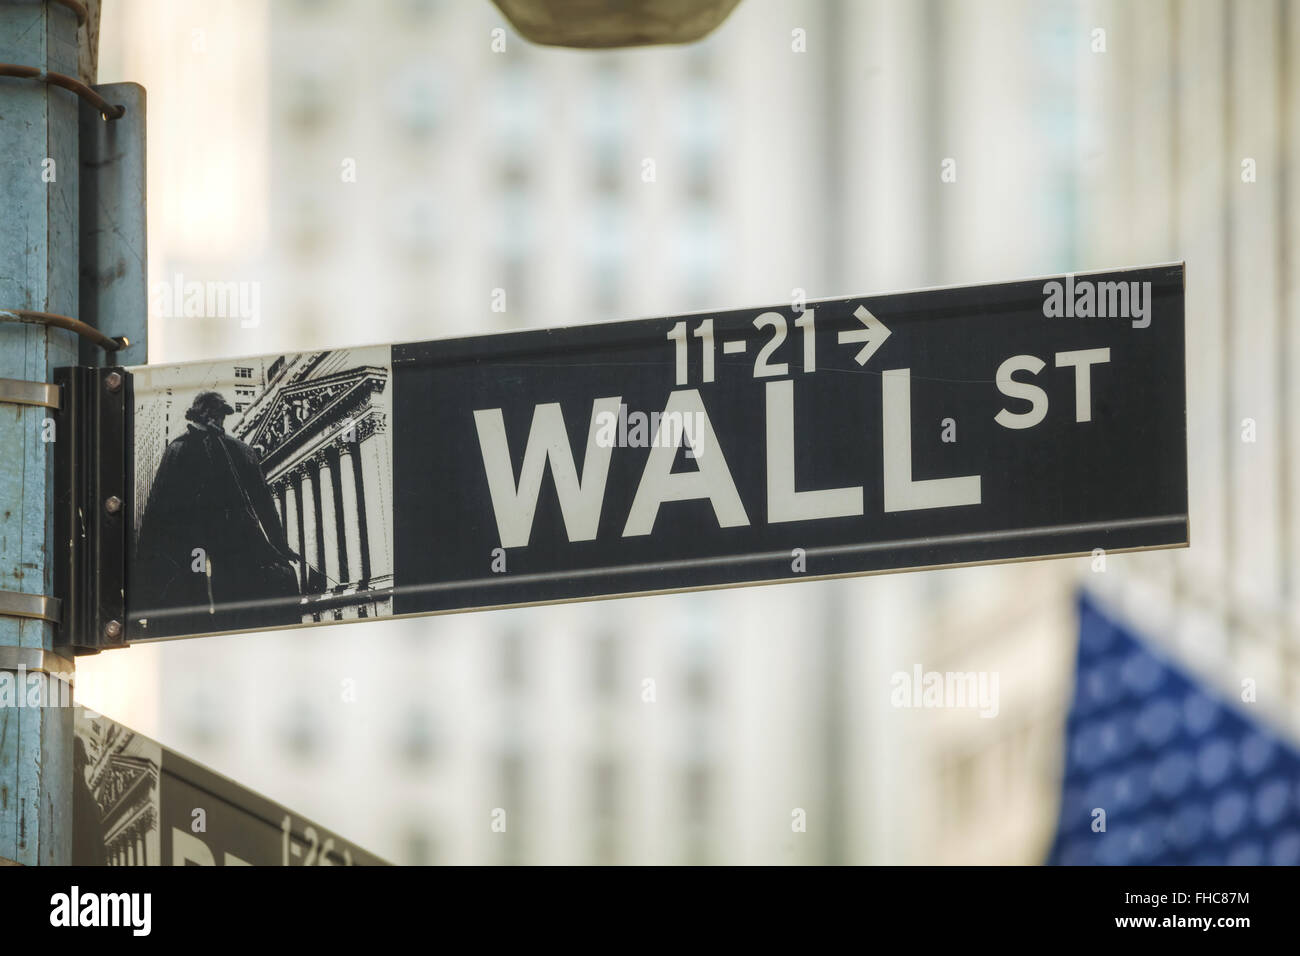 Wall street sign in New York City, USA - Stock Image